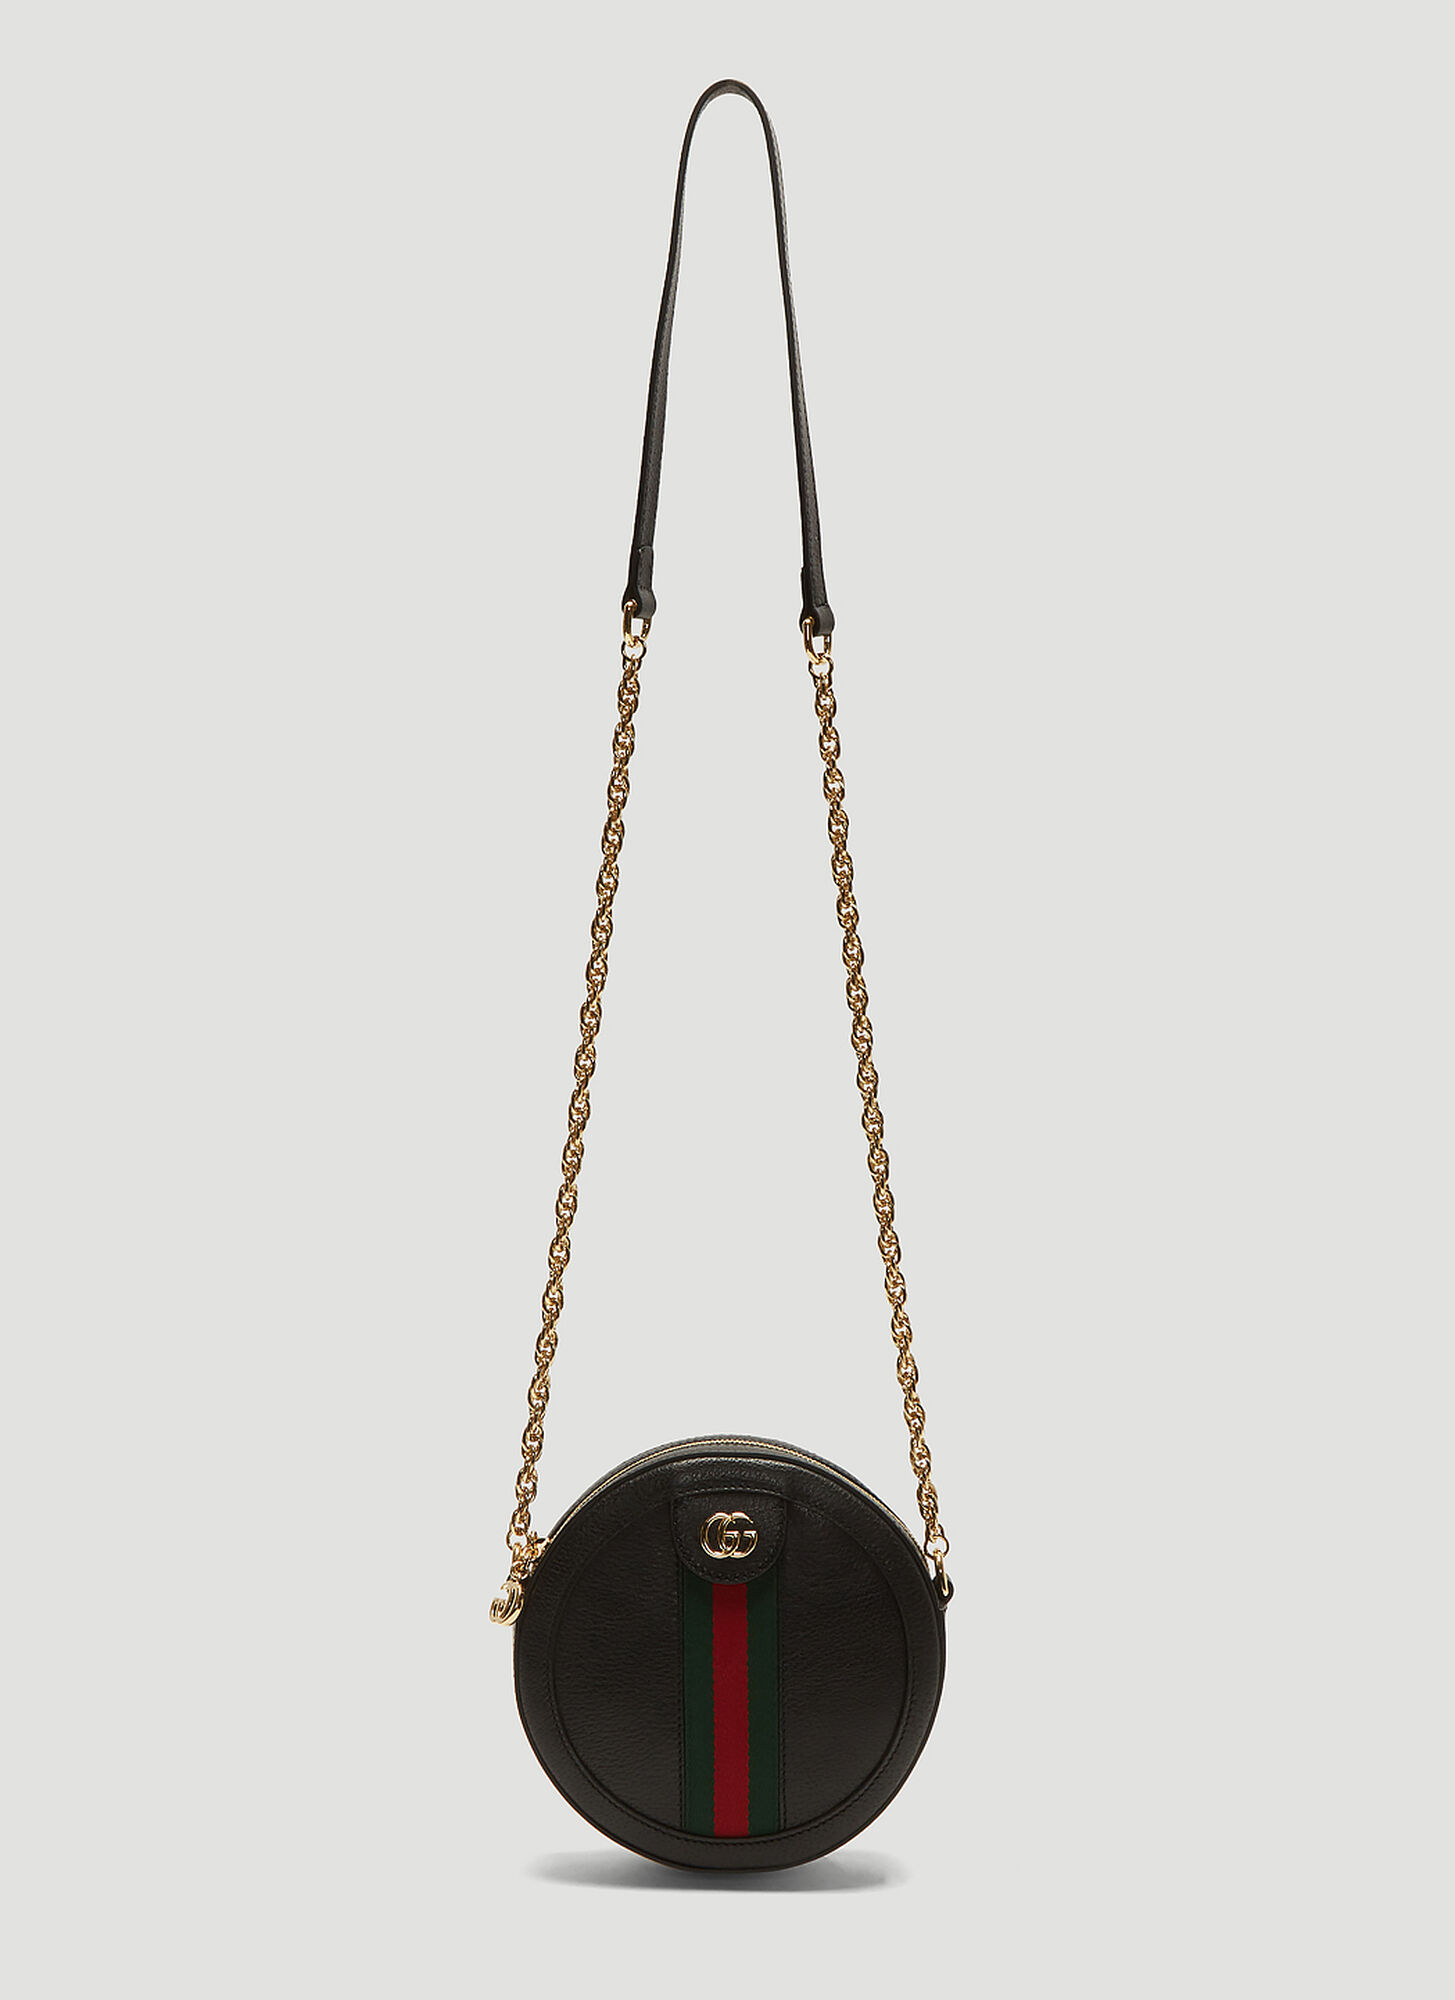 Photo of Gucci Ophidia Round Crossbody Bag in Black - Gucci Shoulder Bags